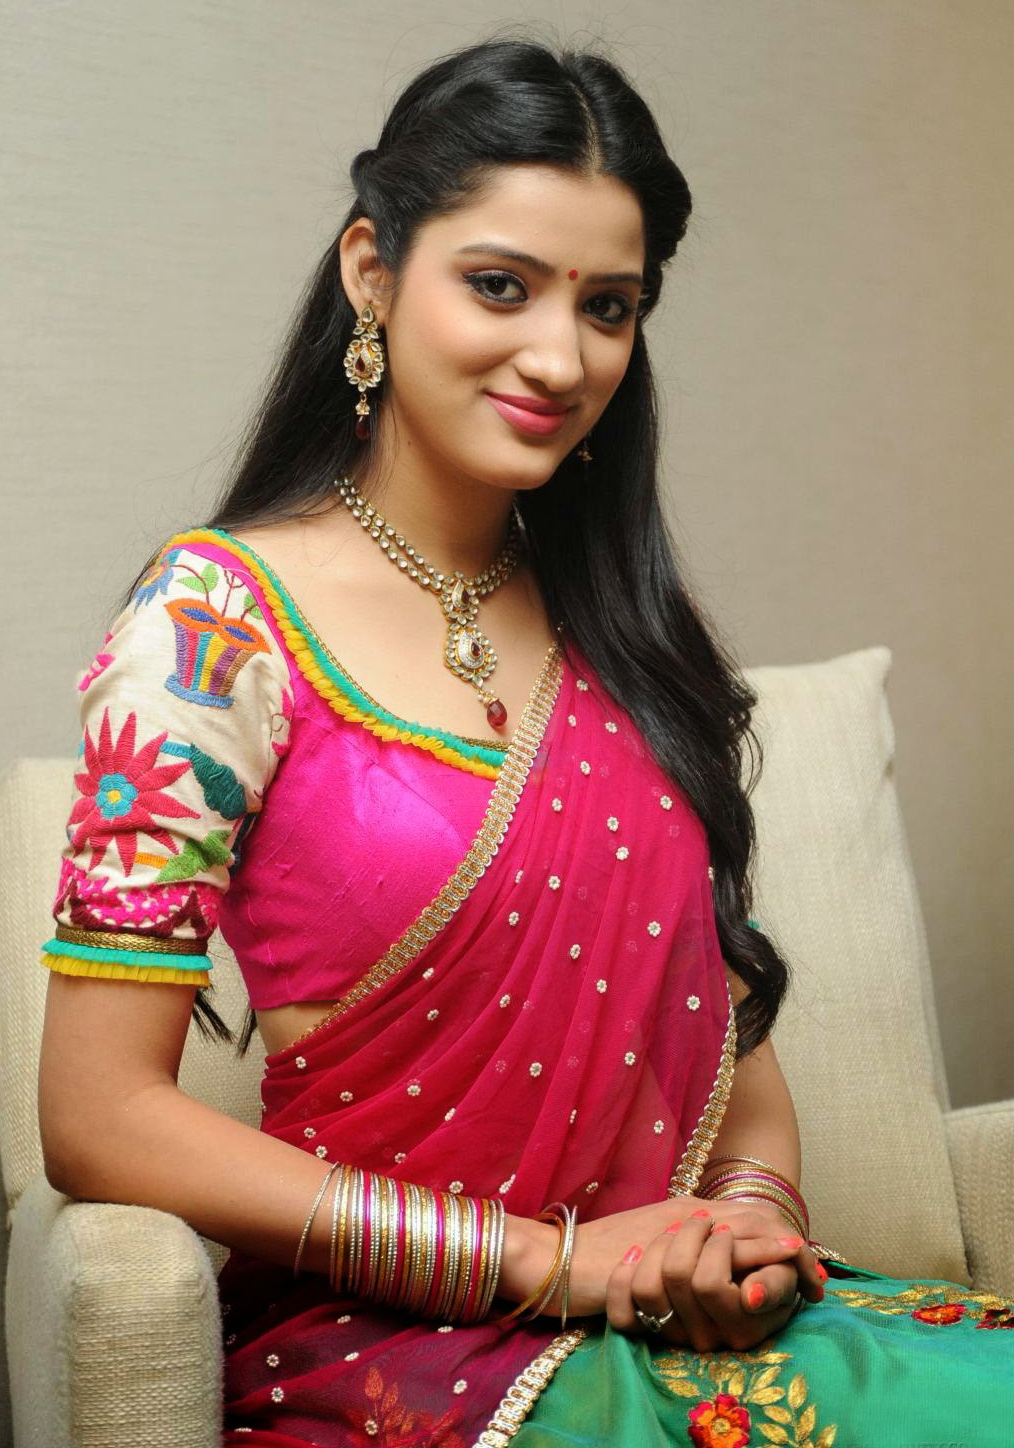 Saree Market South Indian Actresses Richa Panai Red And Green Half -8445